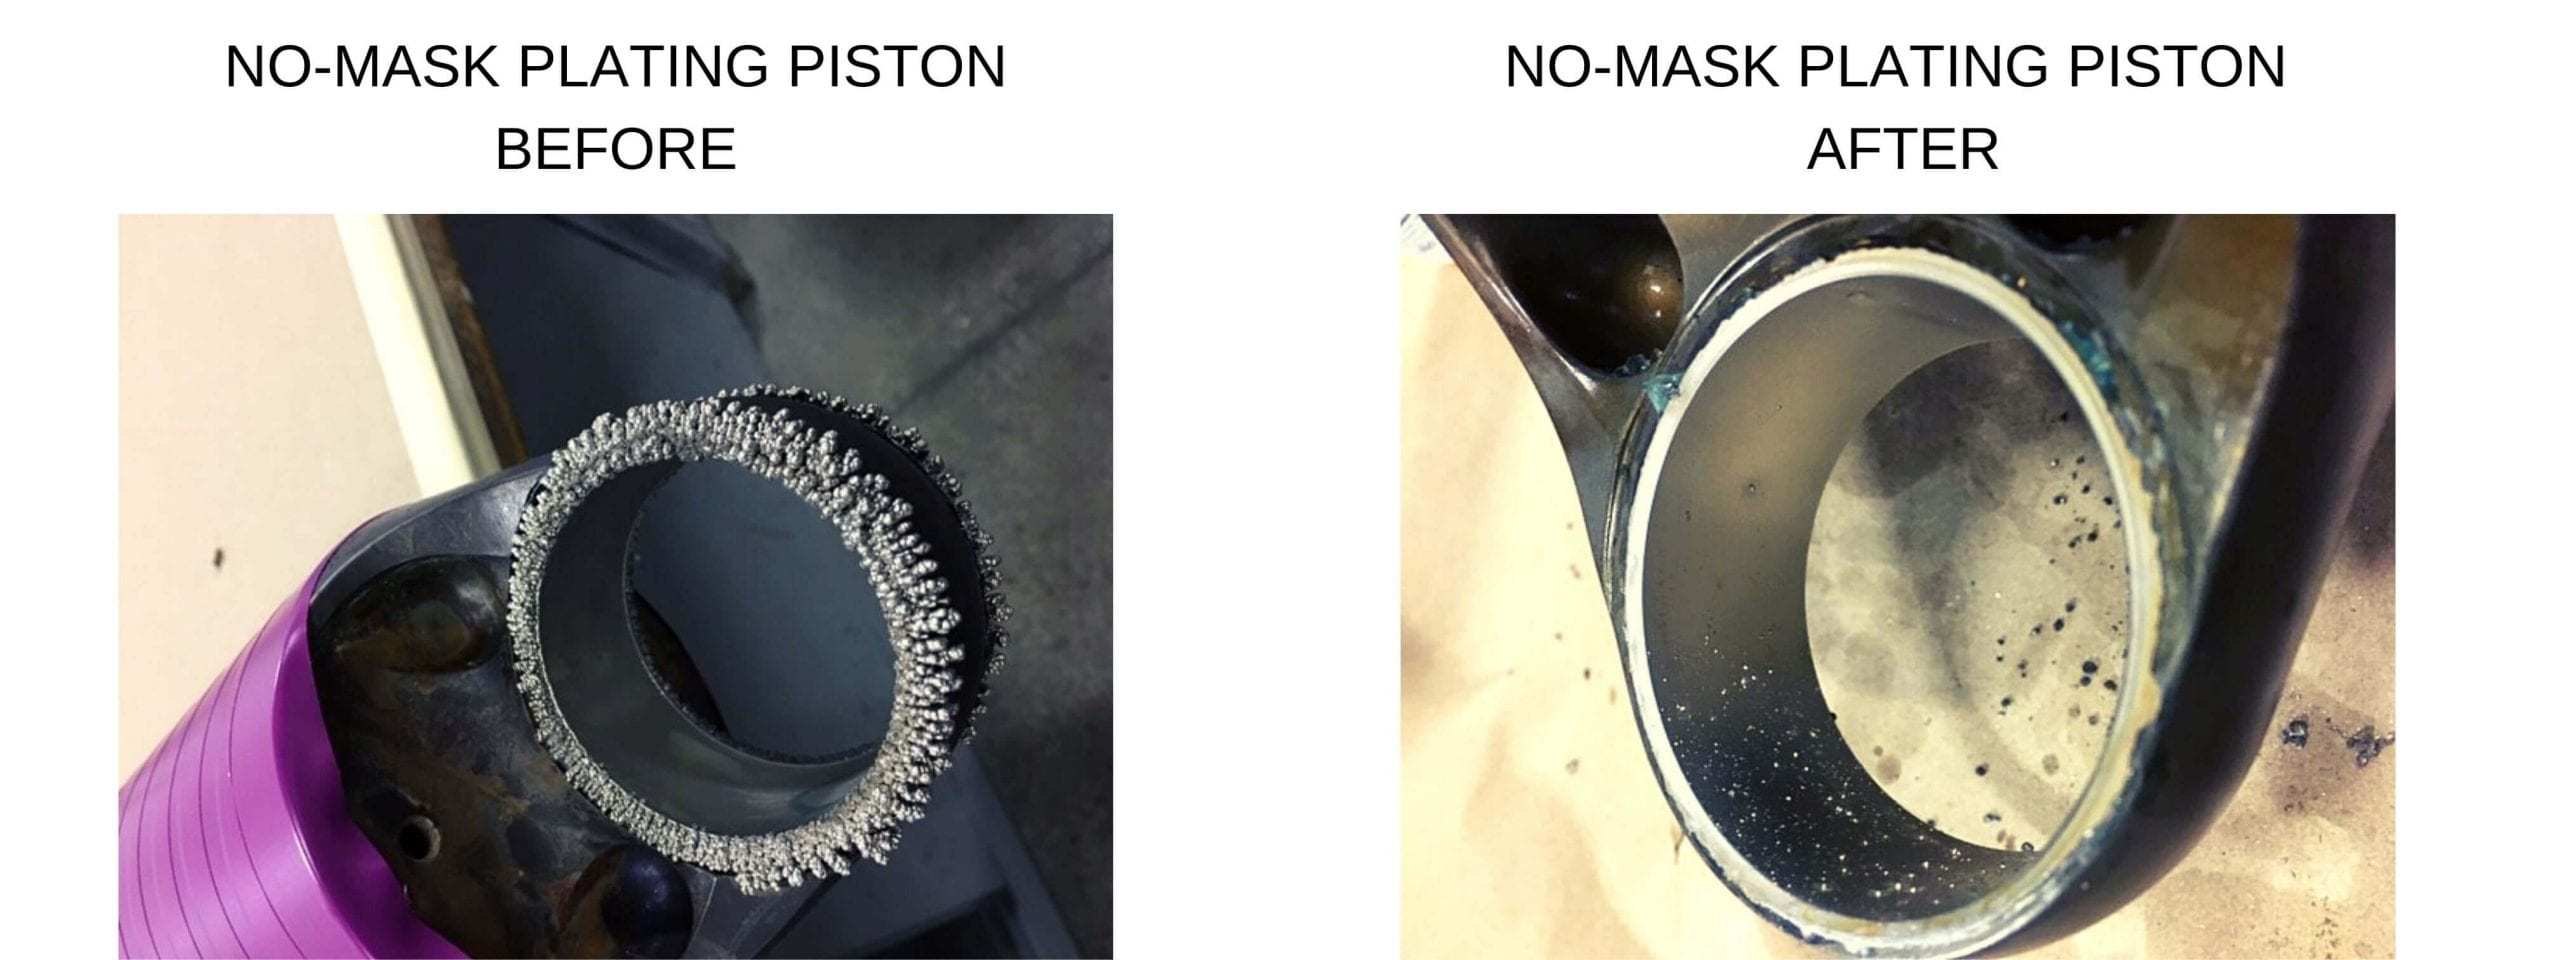 no-mask-plating-piston-before-after